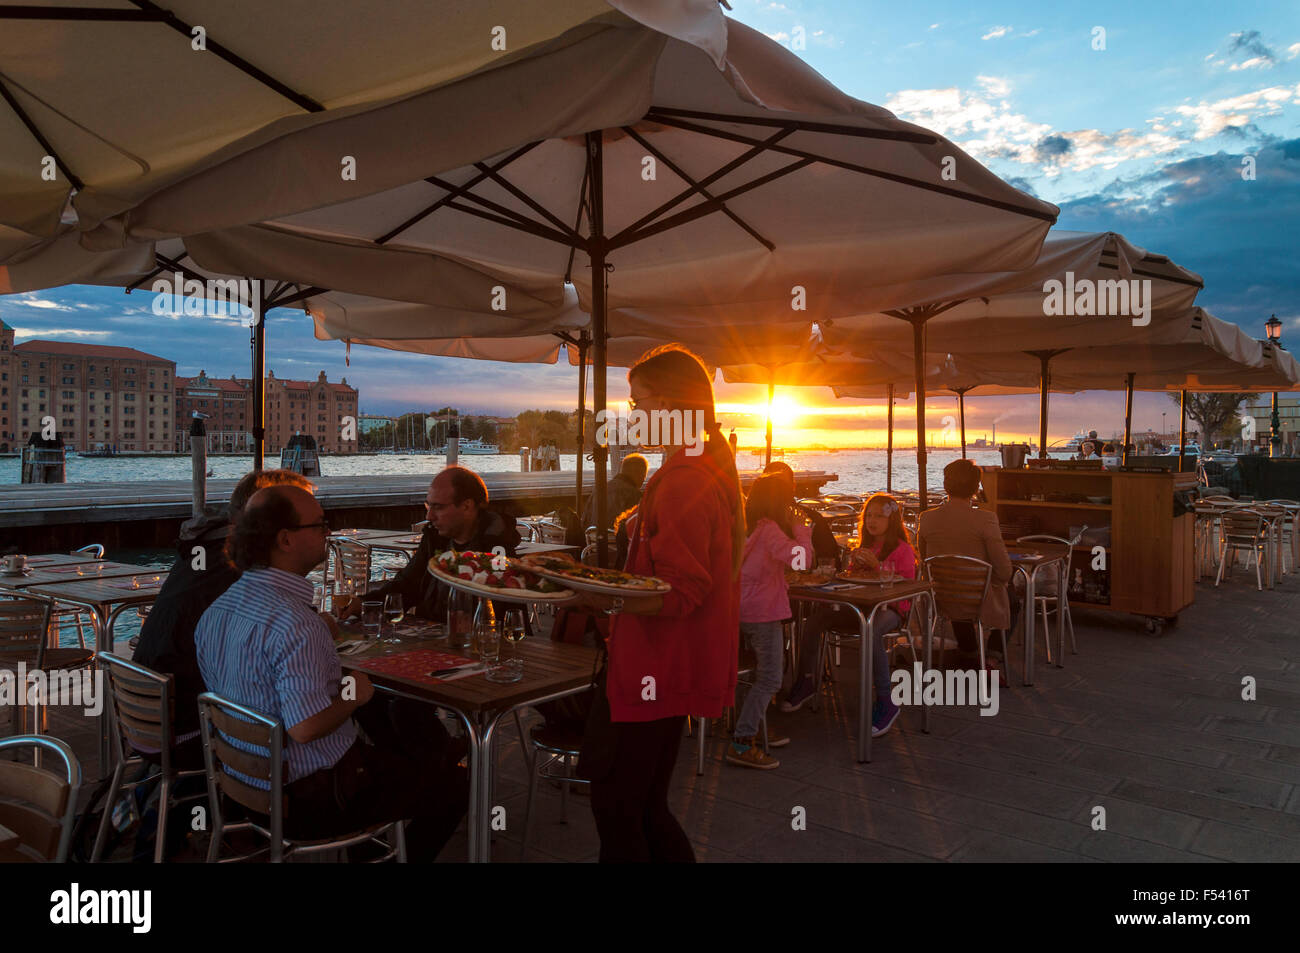 Dining by Canale Della Giudecca at OKE pizza restaurant at sunset in Venice, Italy - Stock Image